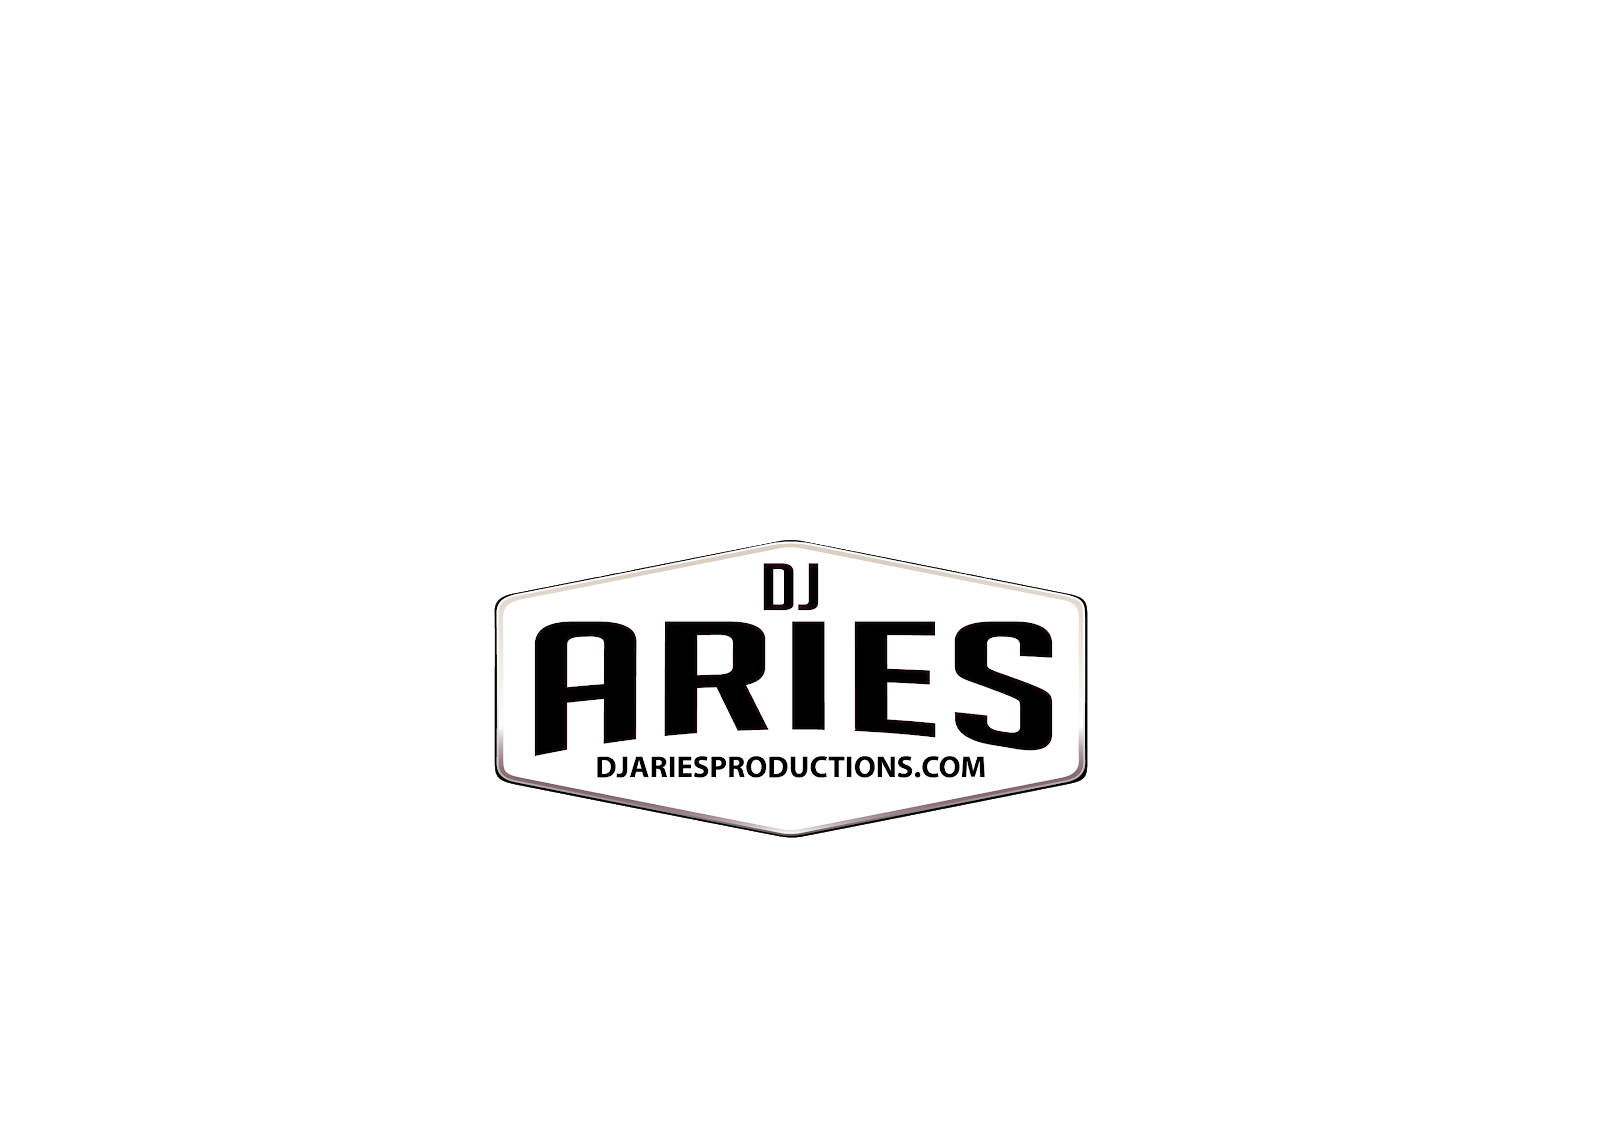 ARIES PRODUCTIONS